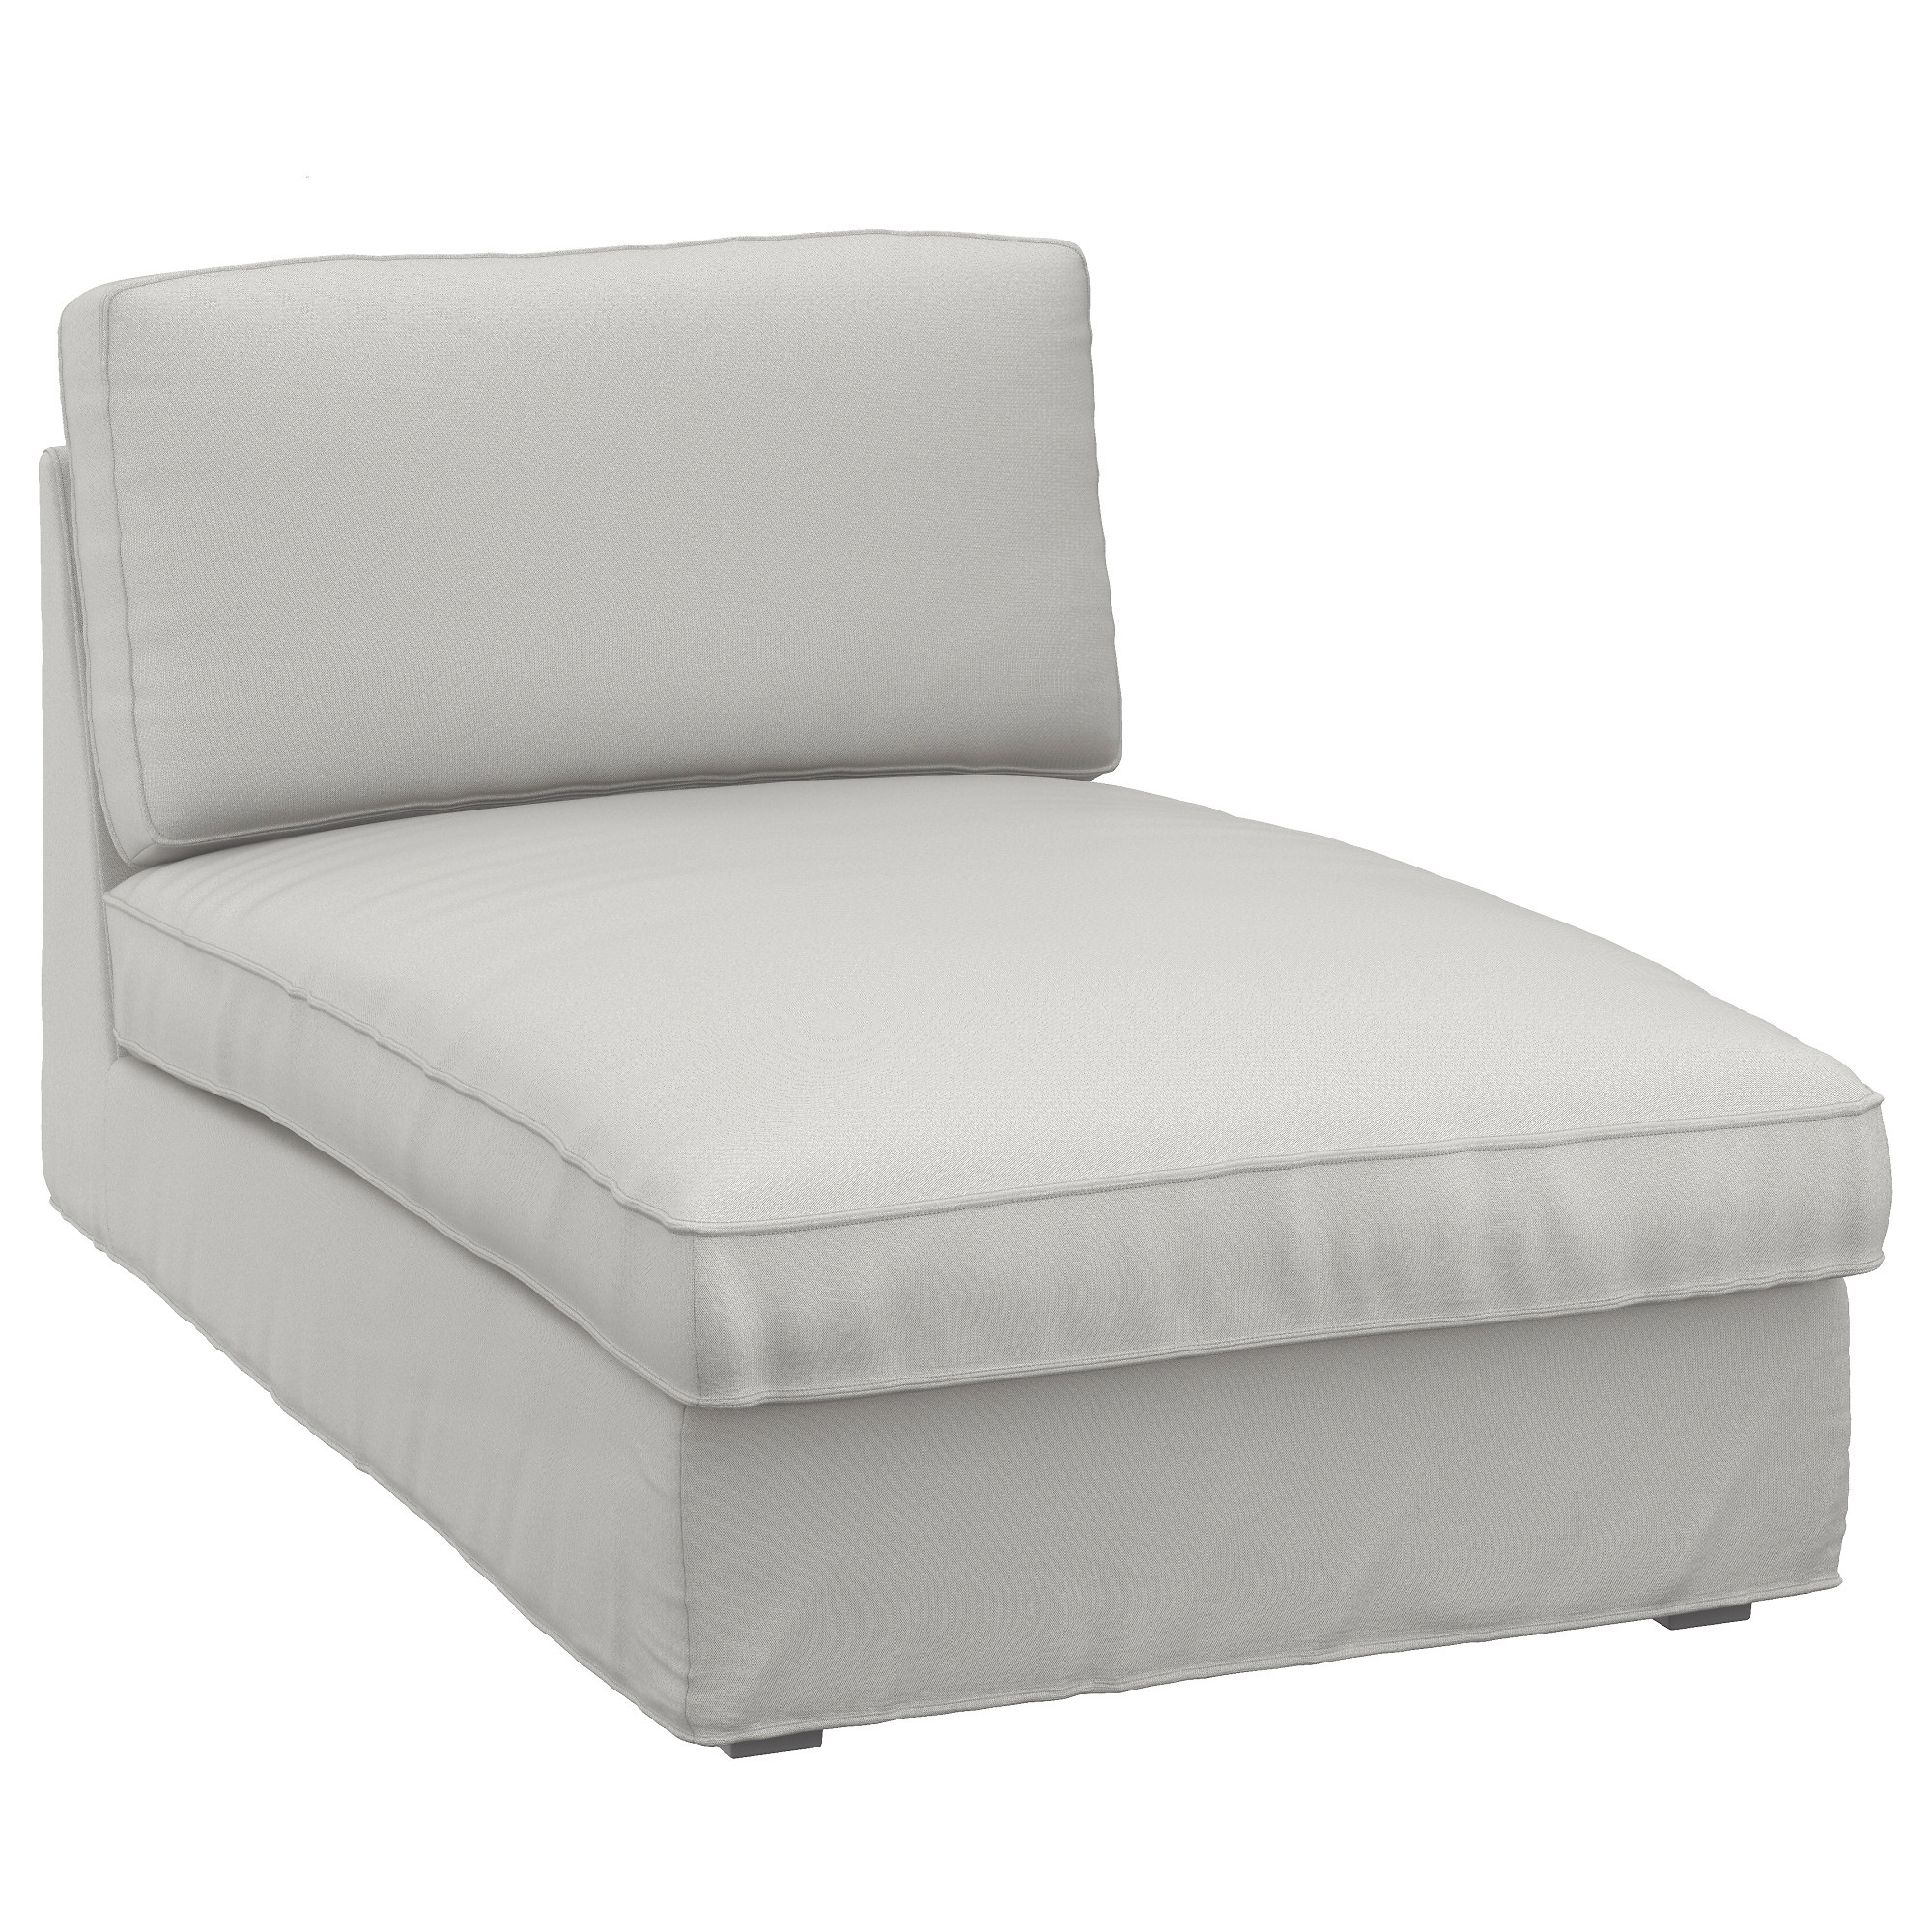 Kivik Chaise Longue Ramna Light Grey – Ikea With Favorite Ikea Chaise Longues (View 4 of 15)